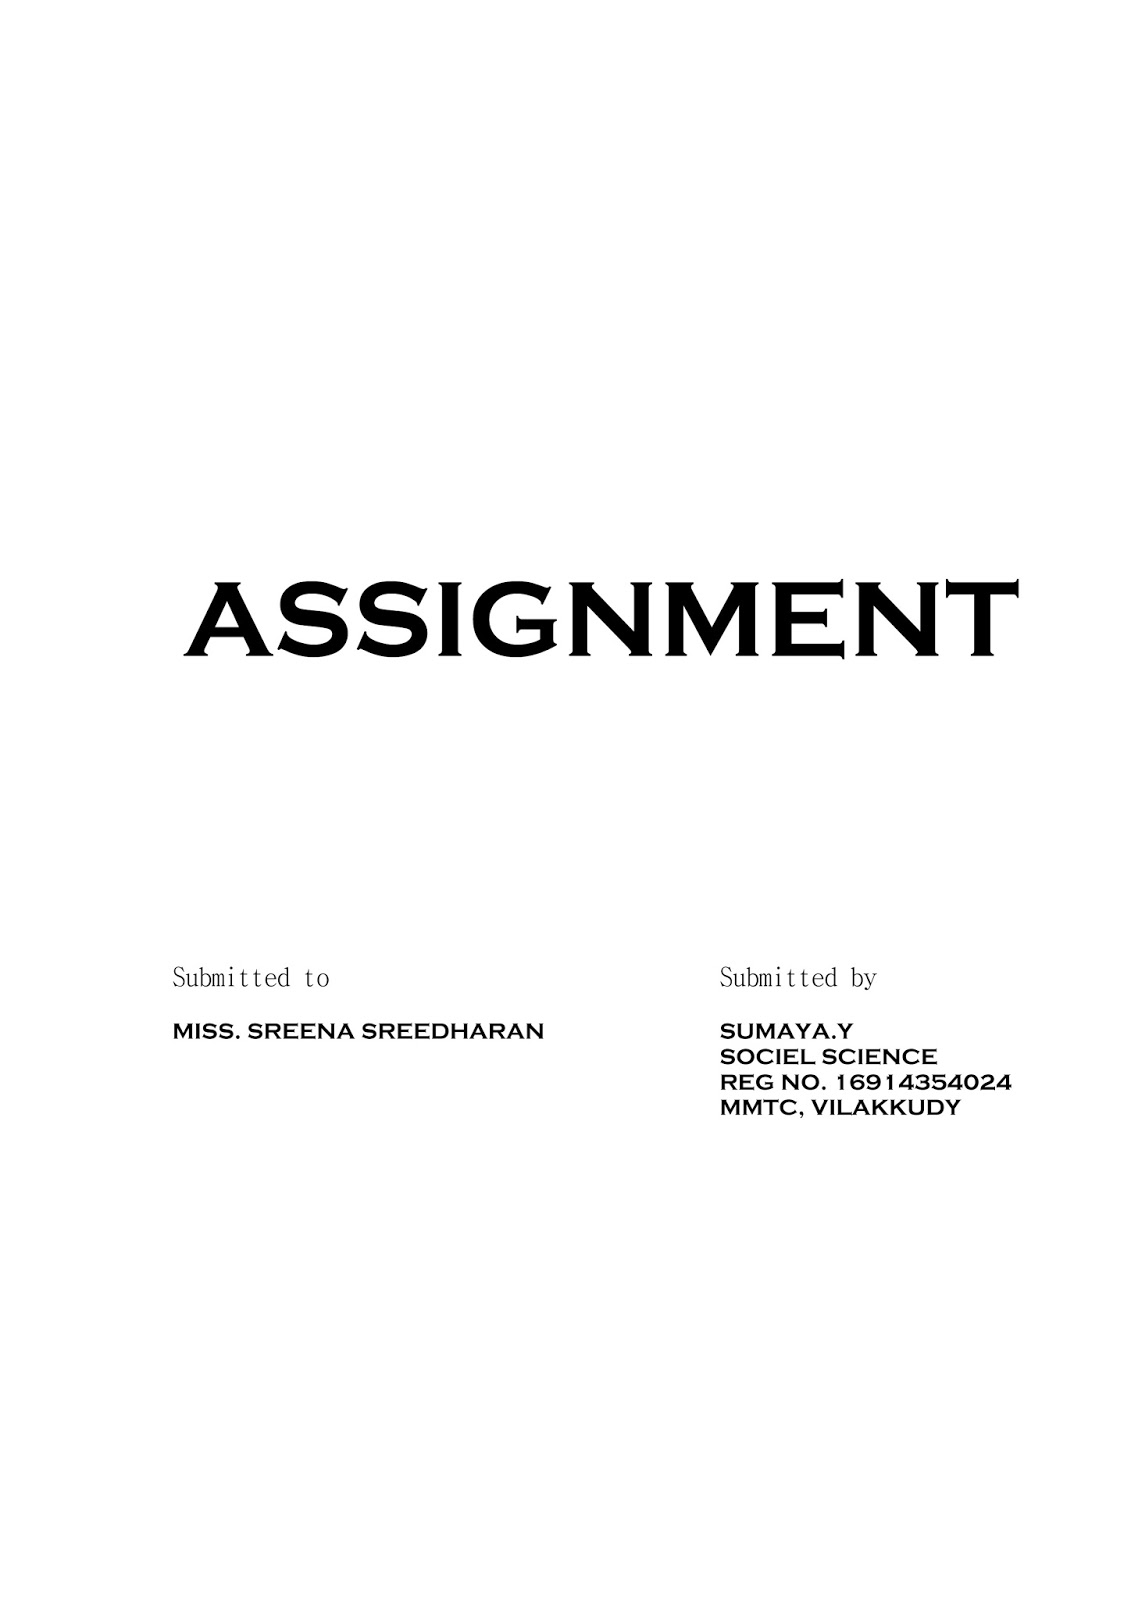 assignment no 01submitted to miss riffat In the supreme court of mississippi statement of assignment ashmore v miss auth on educ.